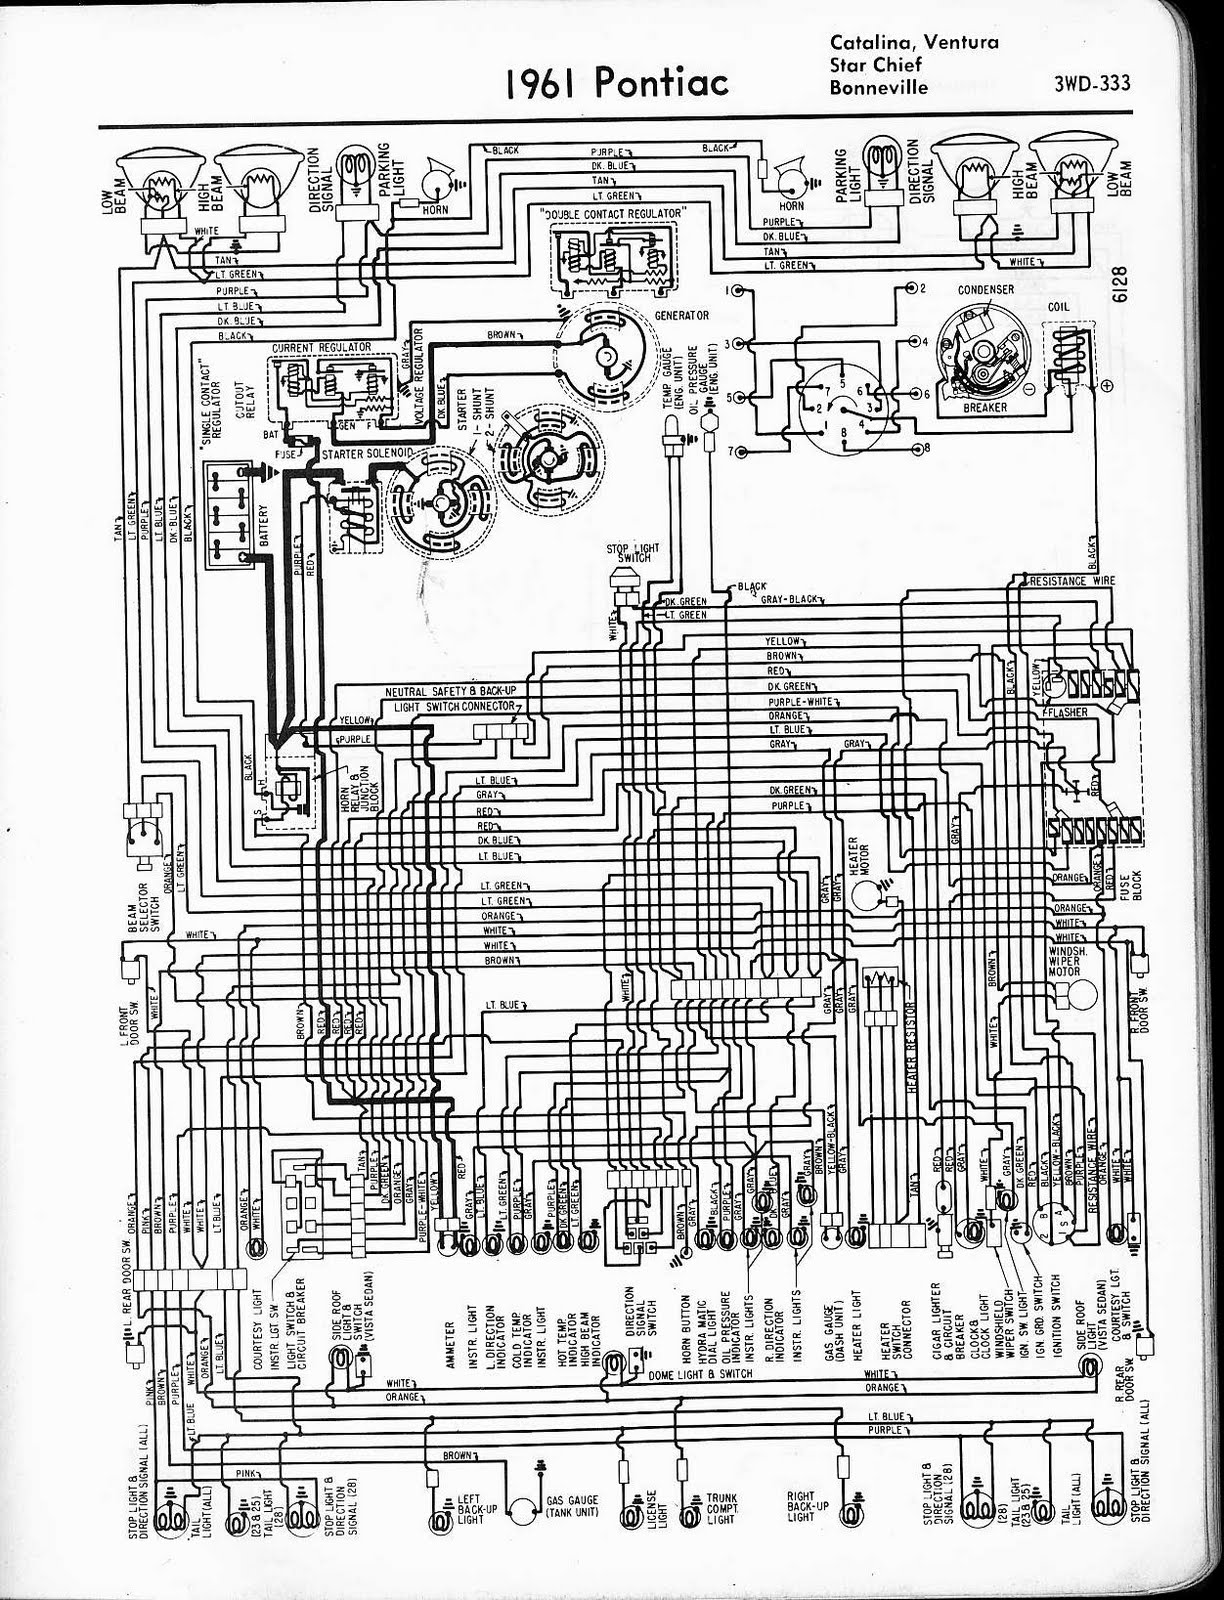 Free Auto Wiring Diagram  1961 Pontiac Catalina  Ventura  Star Chief  And Bonneville Wiring Diagram